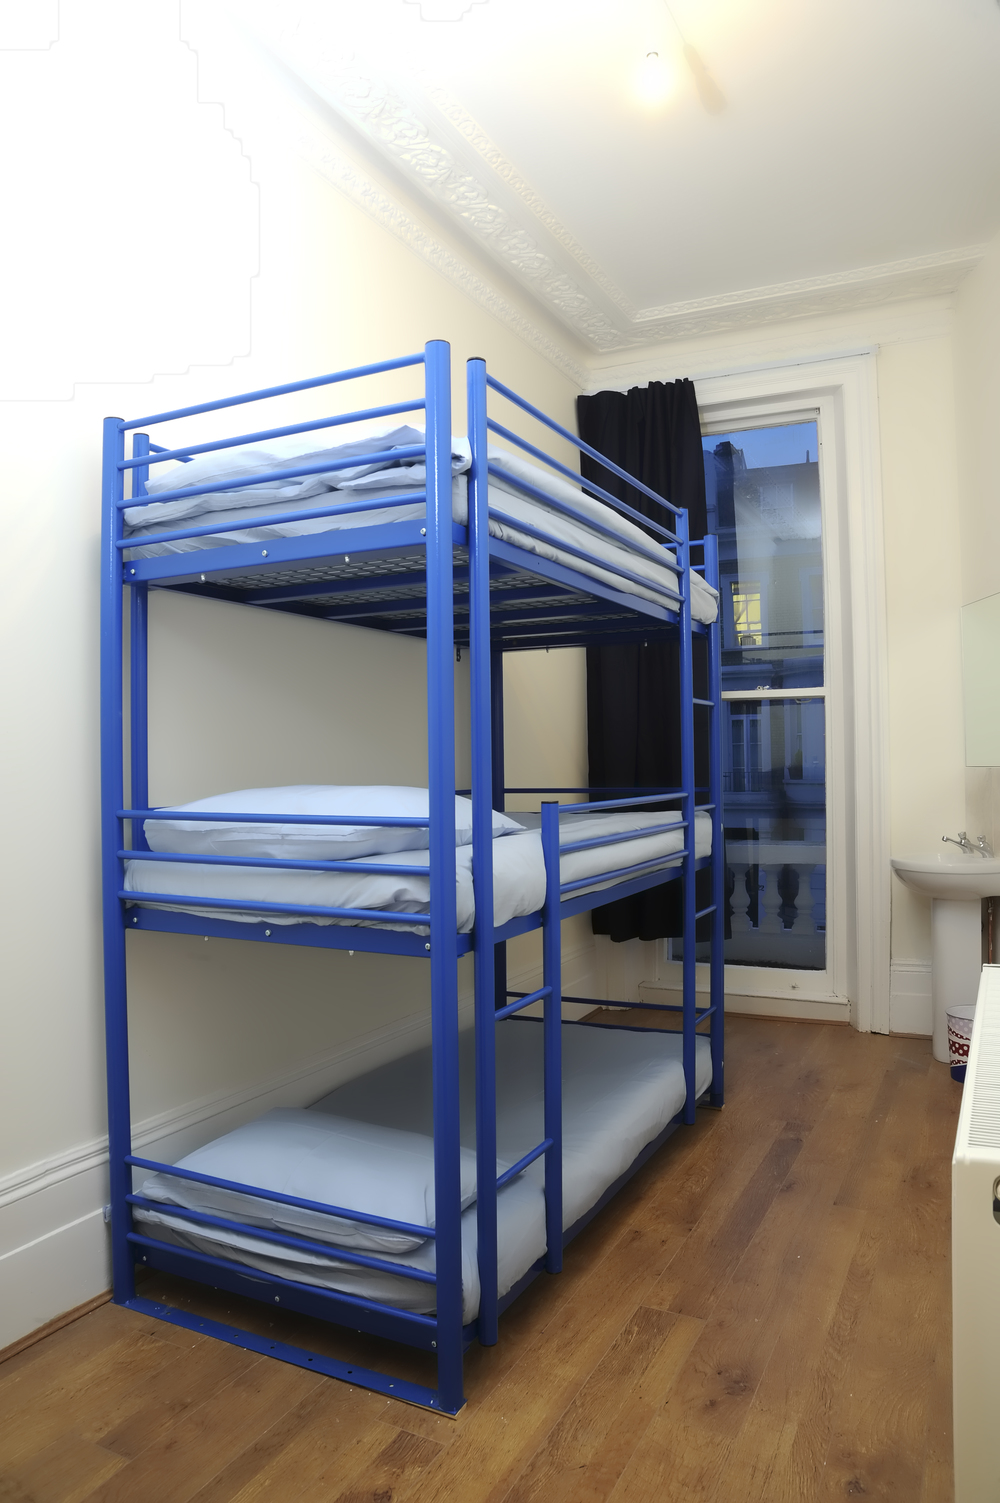 Our triple-bunk-beds are the most cost/space efficient way rooms for groups travelling together.